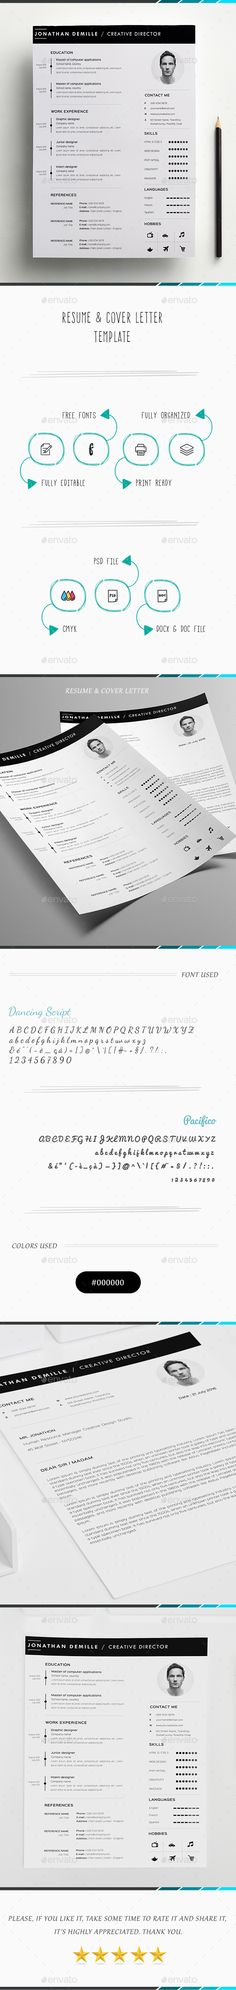 Resume Resume cover letter template, Cover letter template and - ux design resume